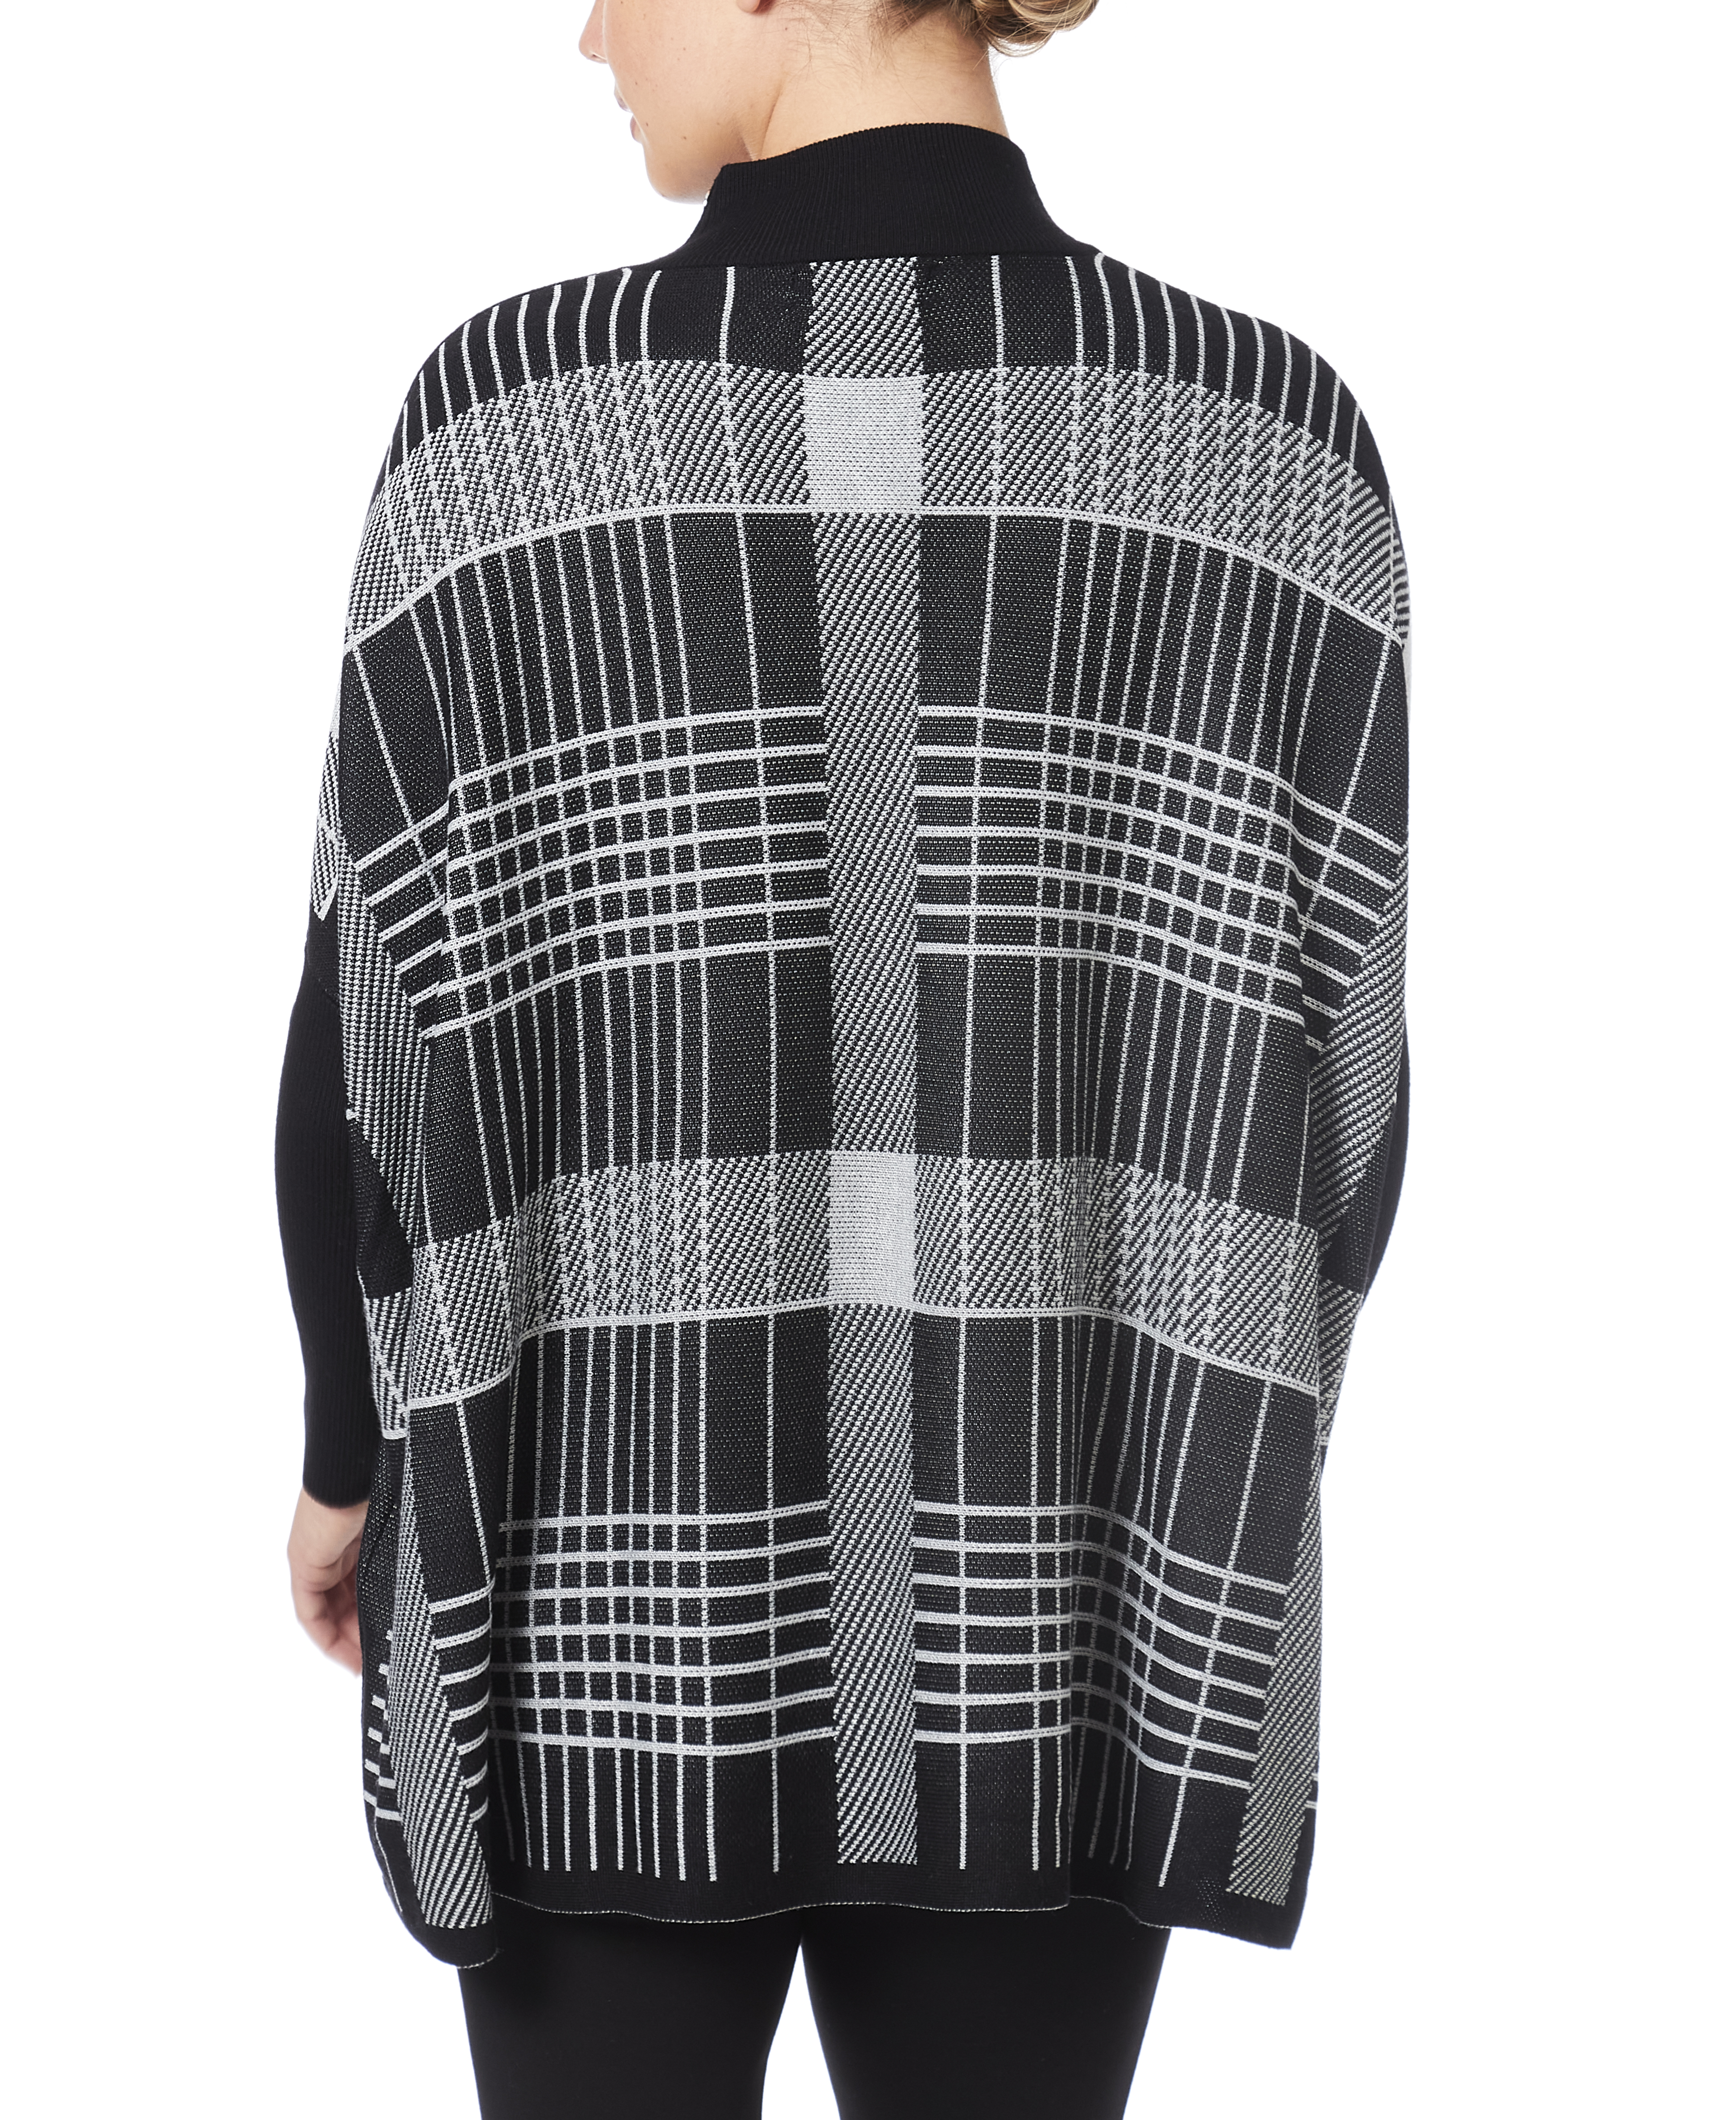 Mock Neck Poncho Sweater in Gridlines Plaid